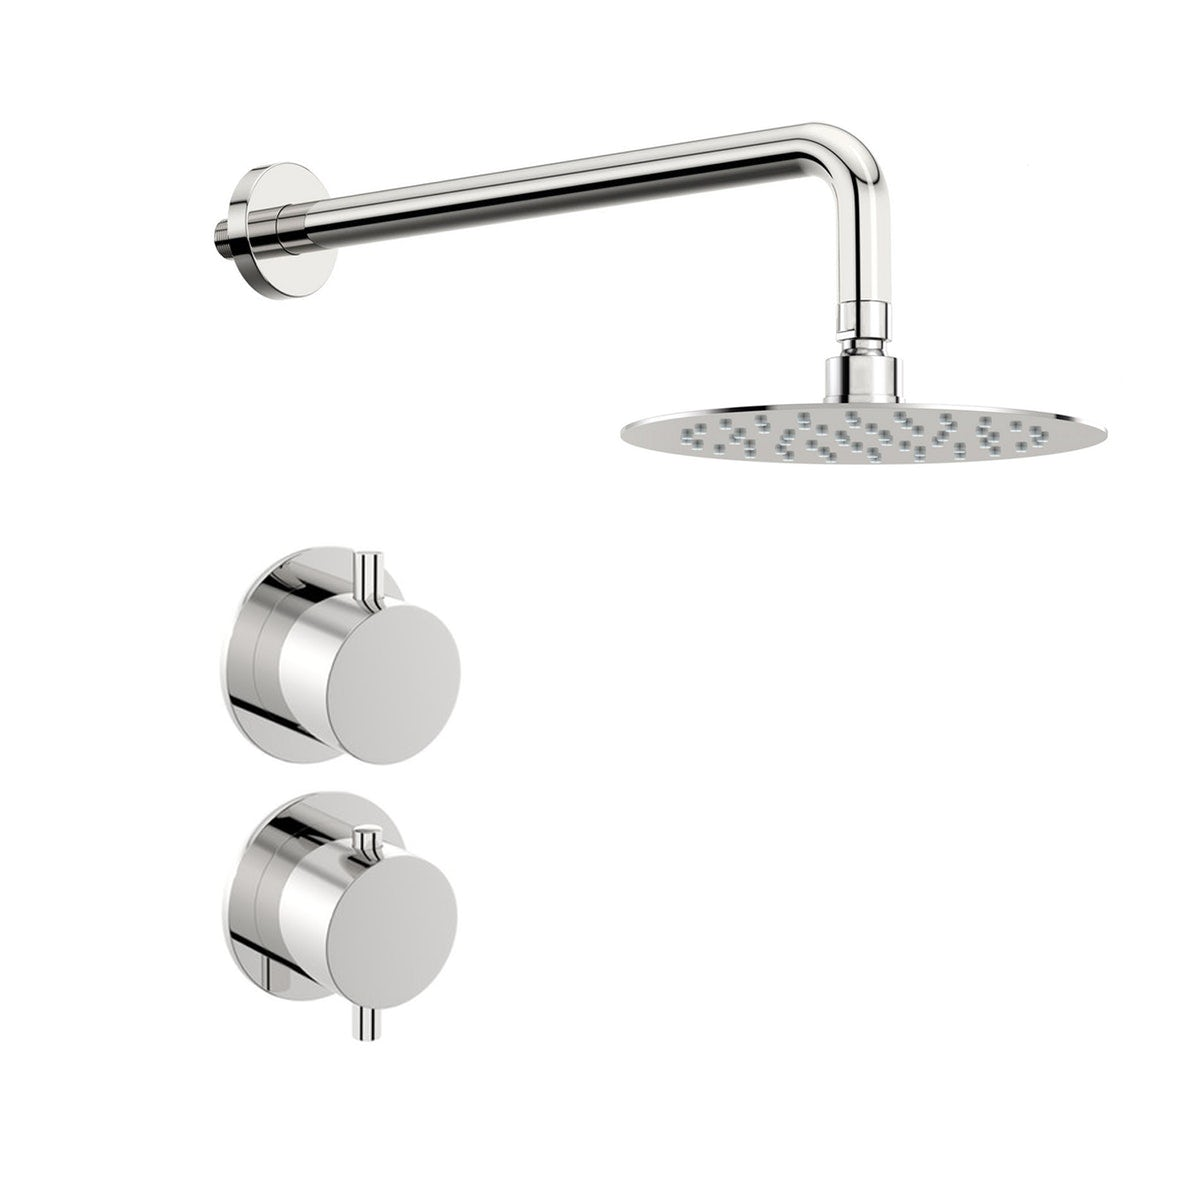 Mode Hardy thermostatic shower valve with wall shower set